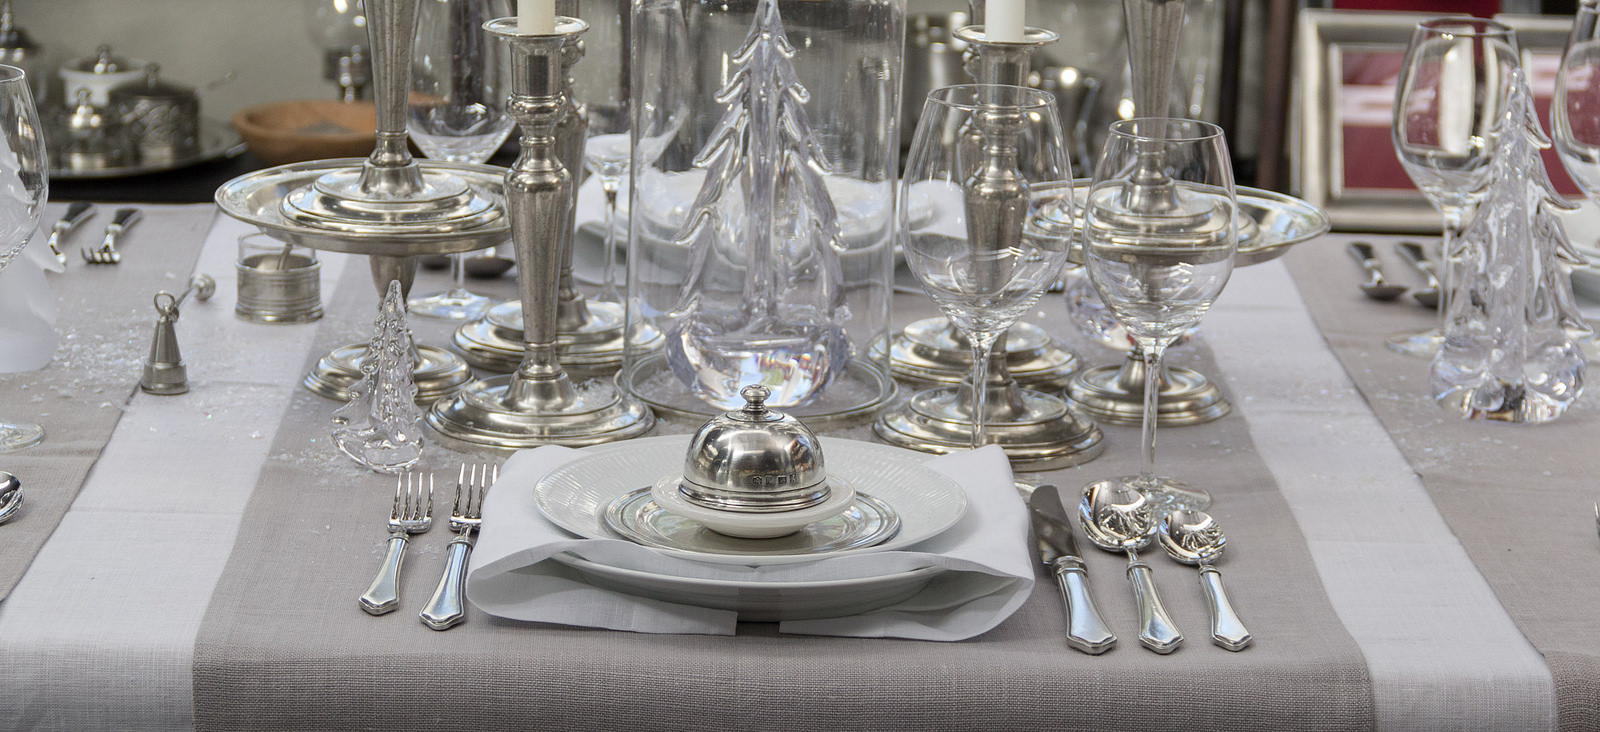 See more tablescapes at Didriks at The Mill at Newton Lower Falls